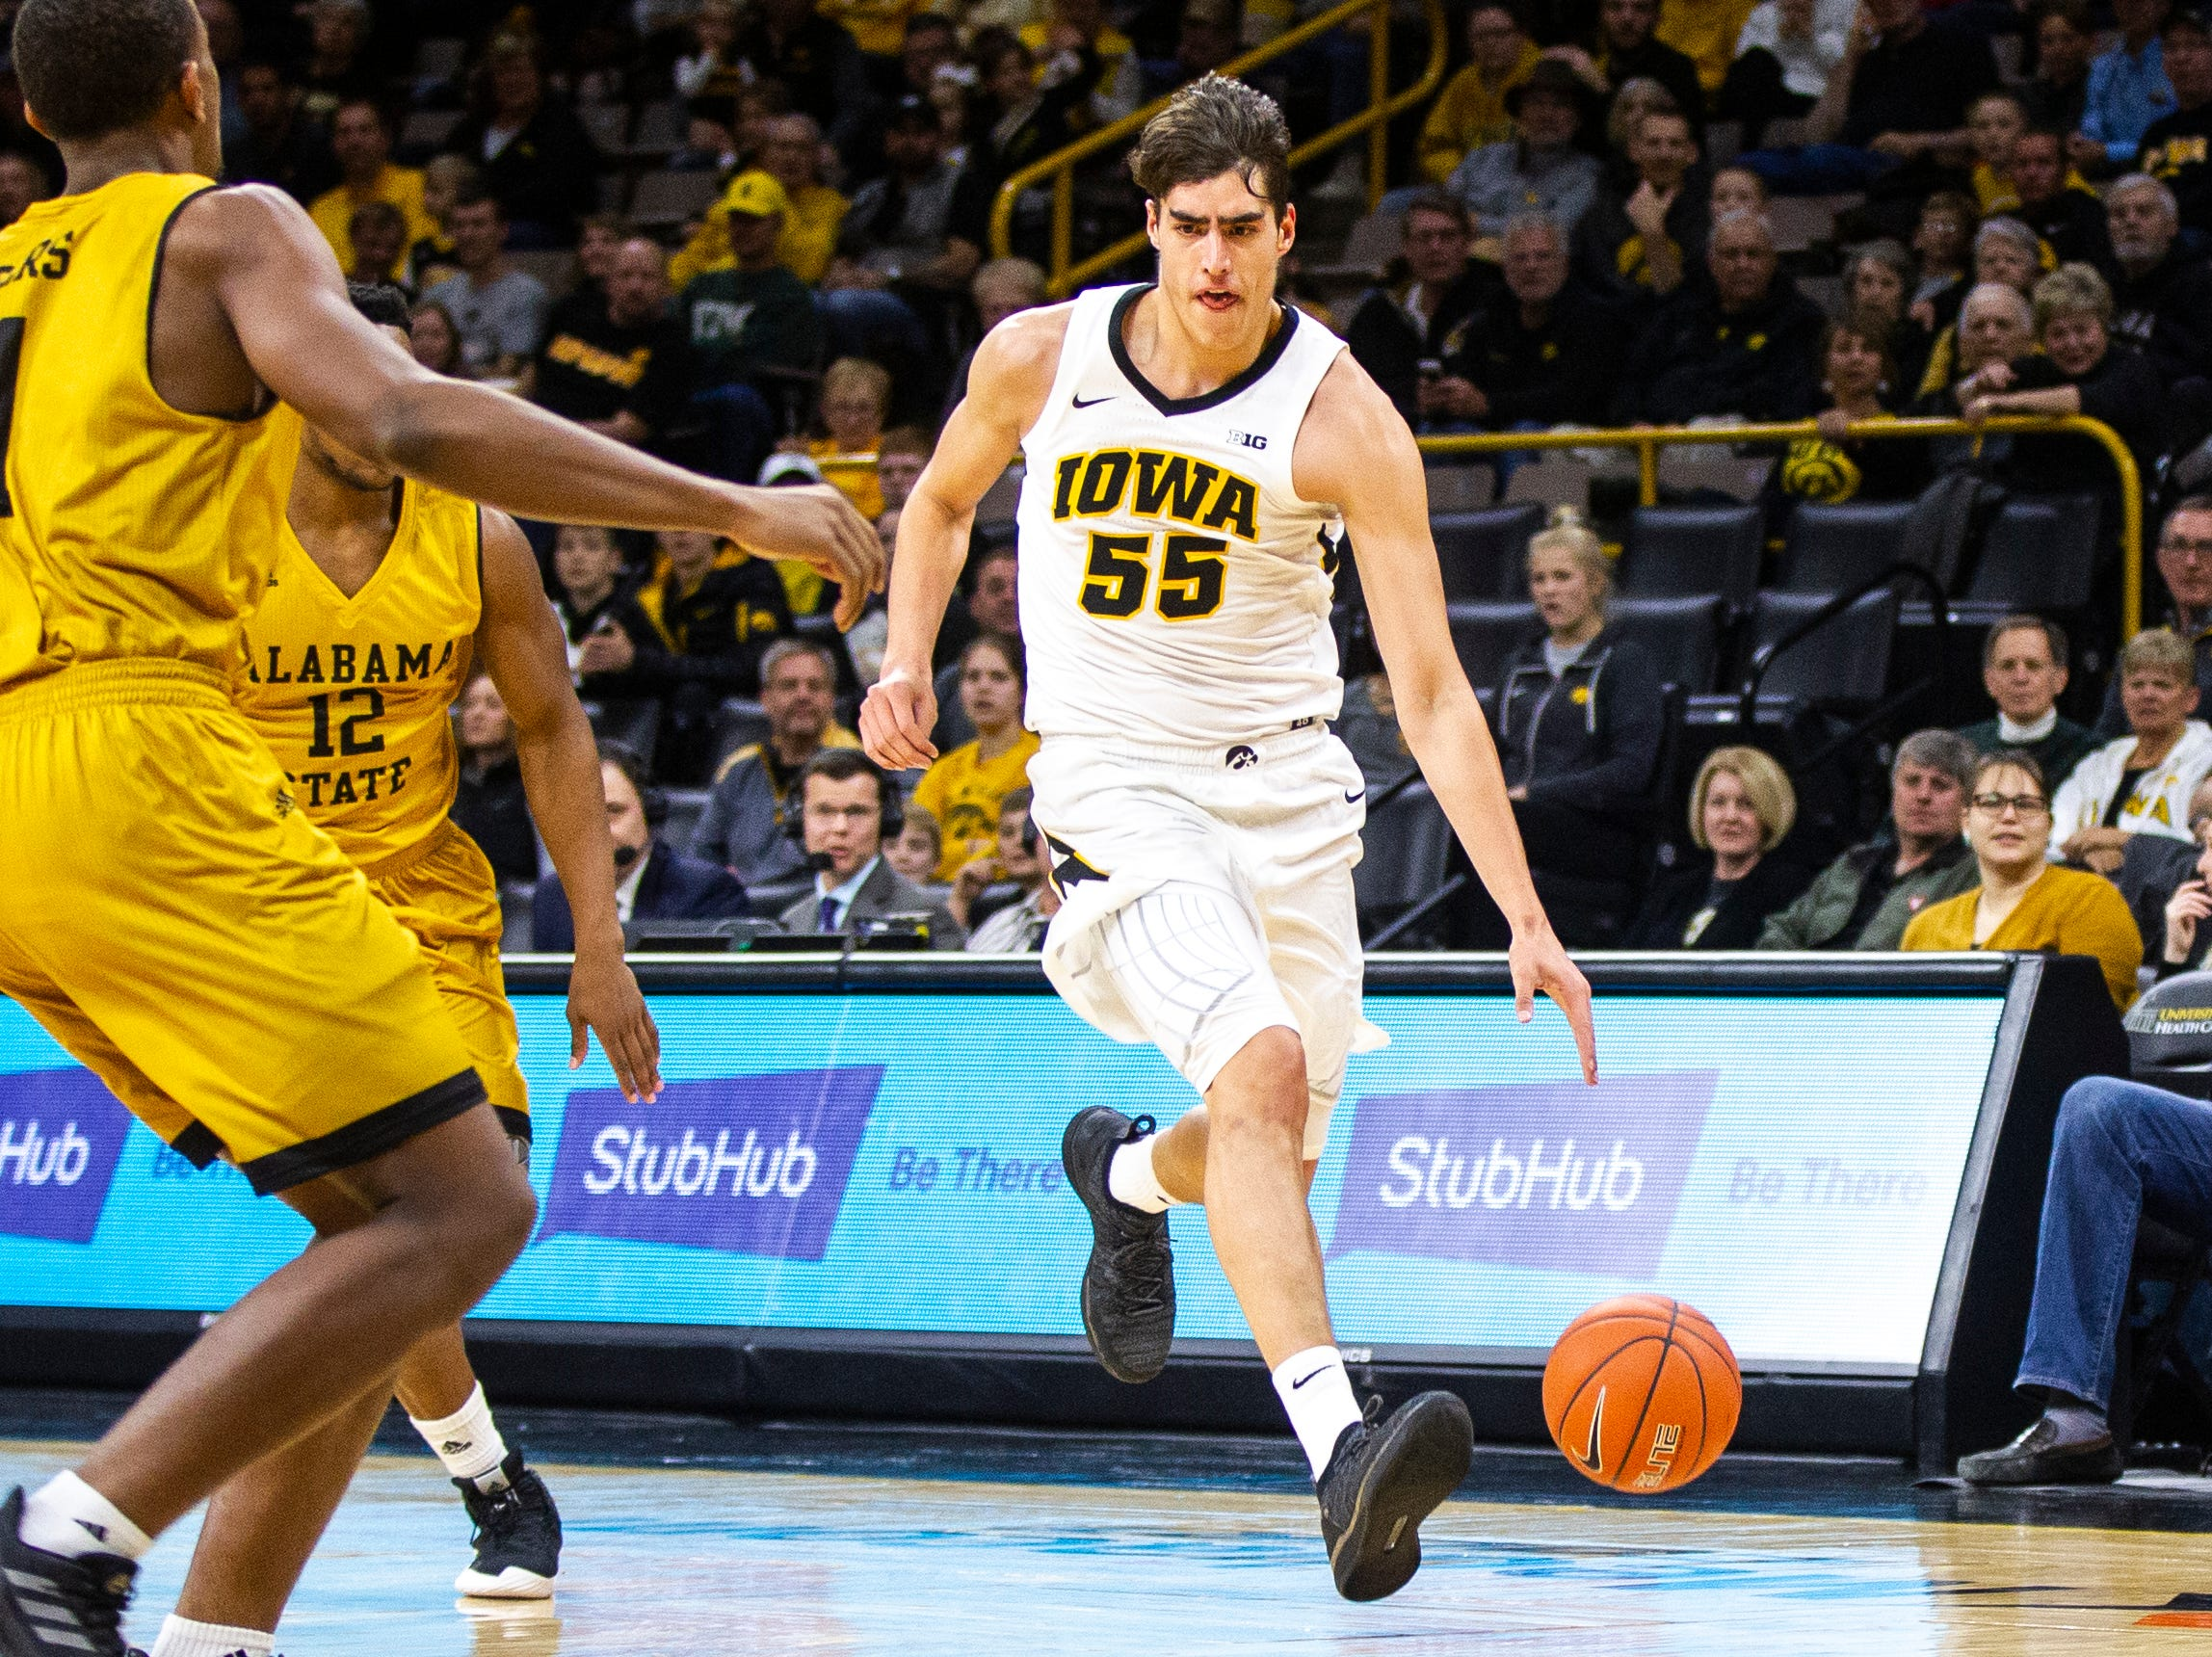 Iowa forward Luka Garza (55) drives to the hoop during an NCAA men's basketball game on Wednesday, Nov. 21, 2018, at Carver-Hawkeye Arena in Iowa City.